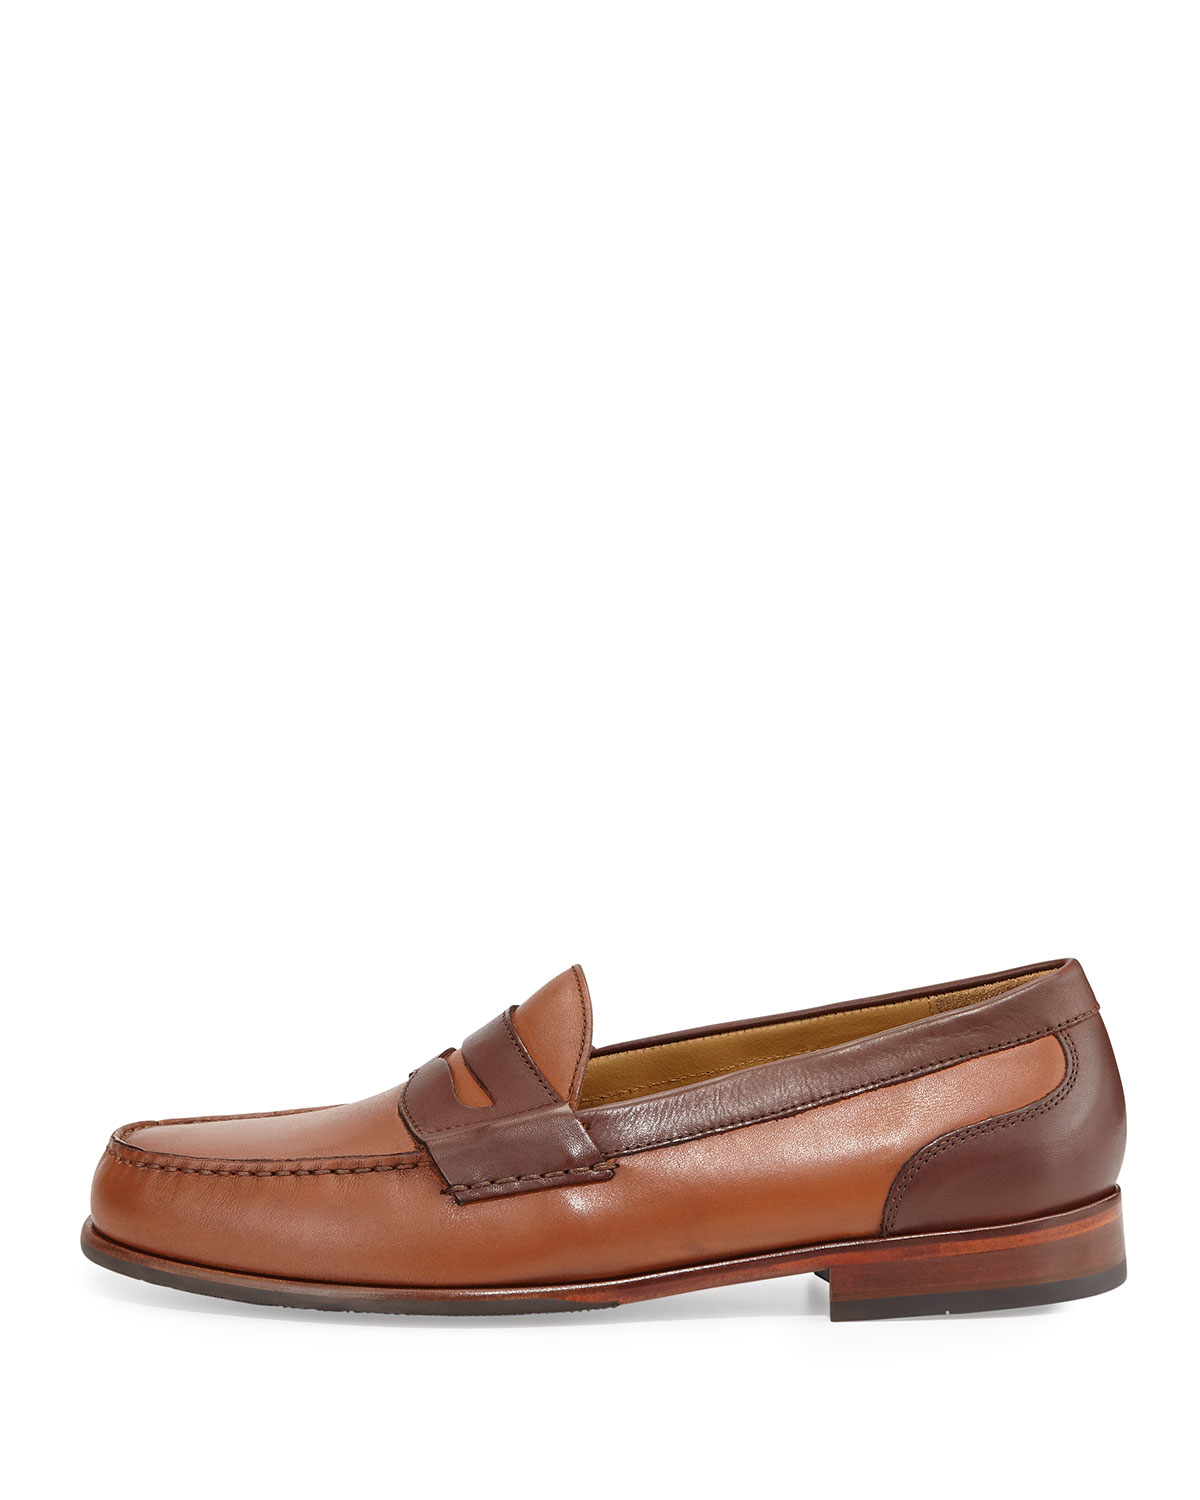 78915a115ed Lyst - Cole Haan Fairmont Penny Ii Two-tone Leather Loafer in Brown ...